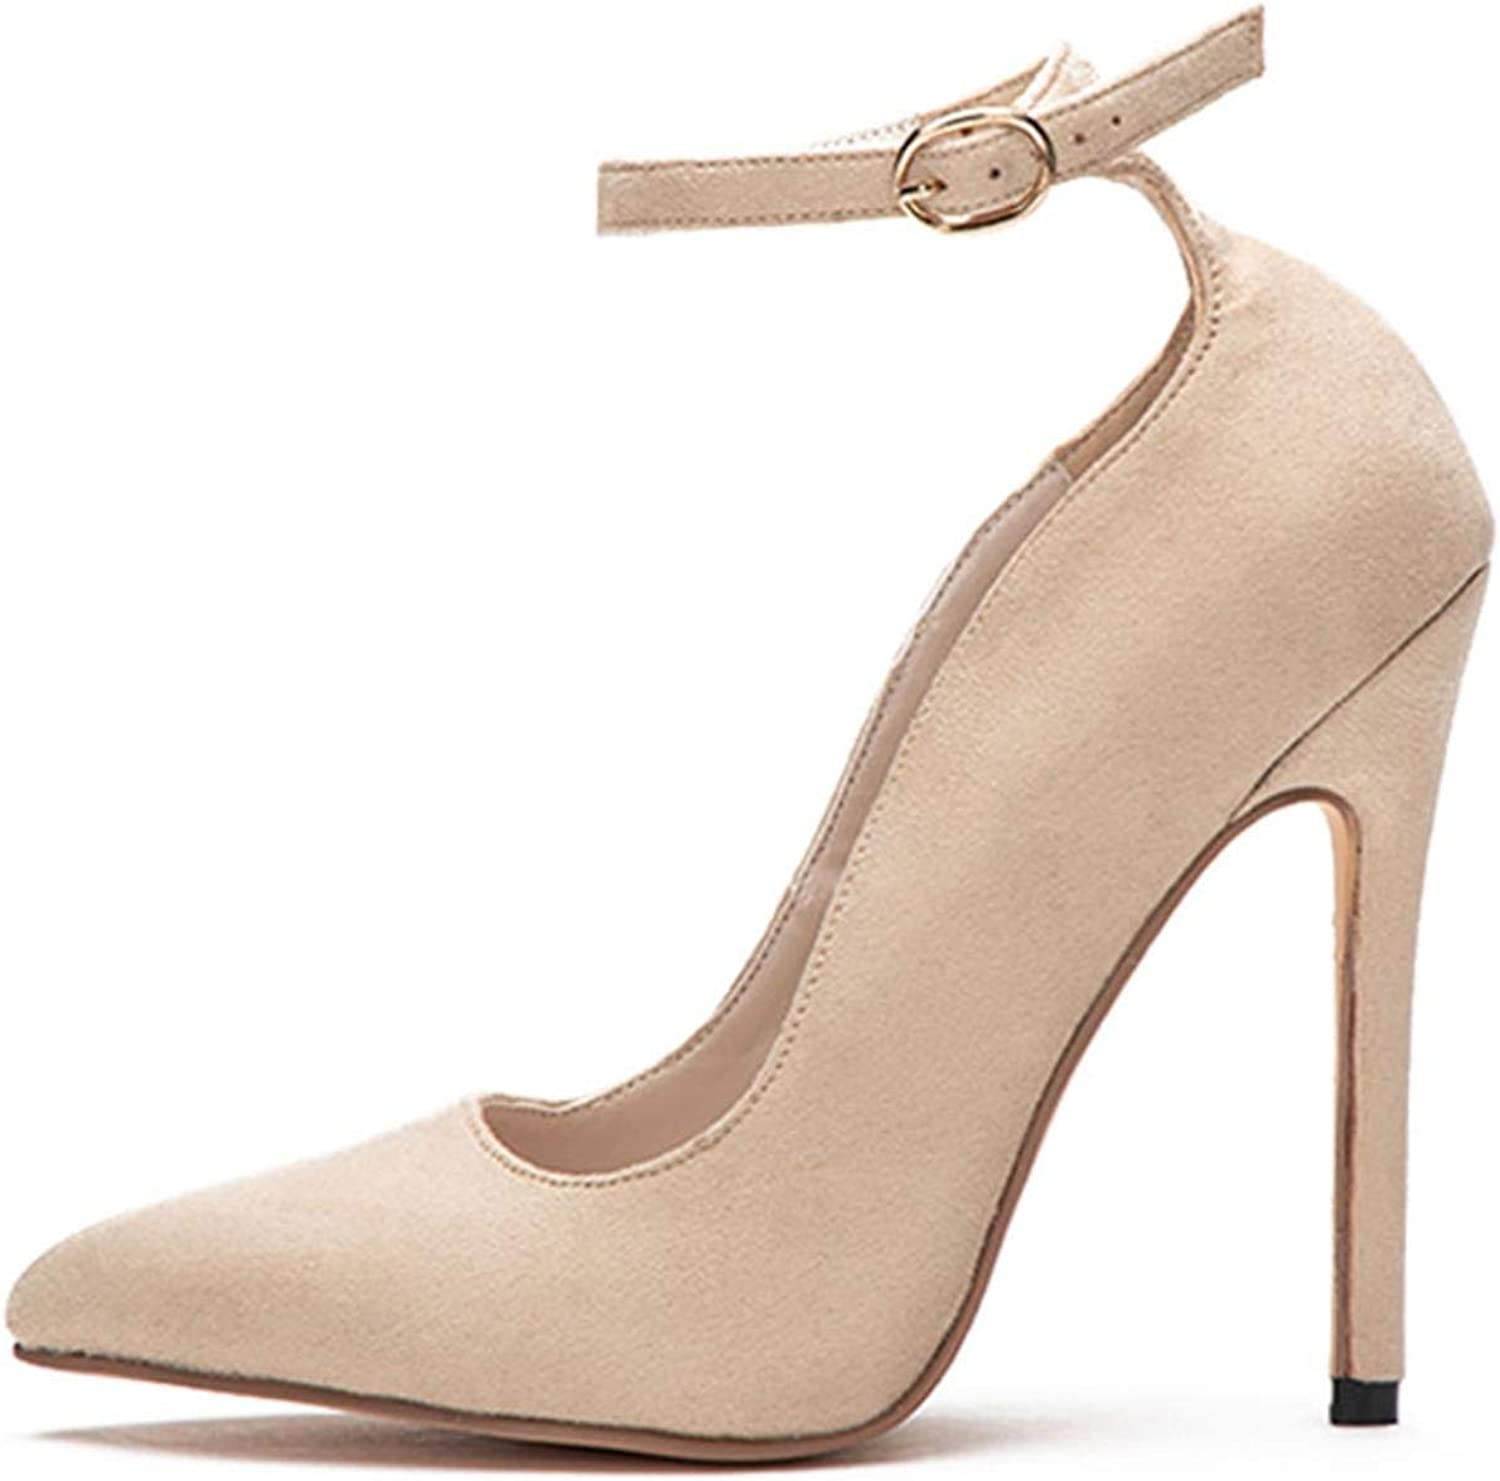 Women's shallow pointed high heels